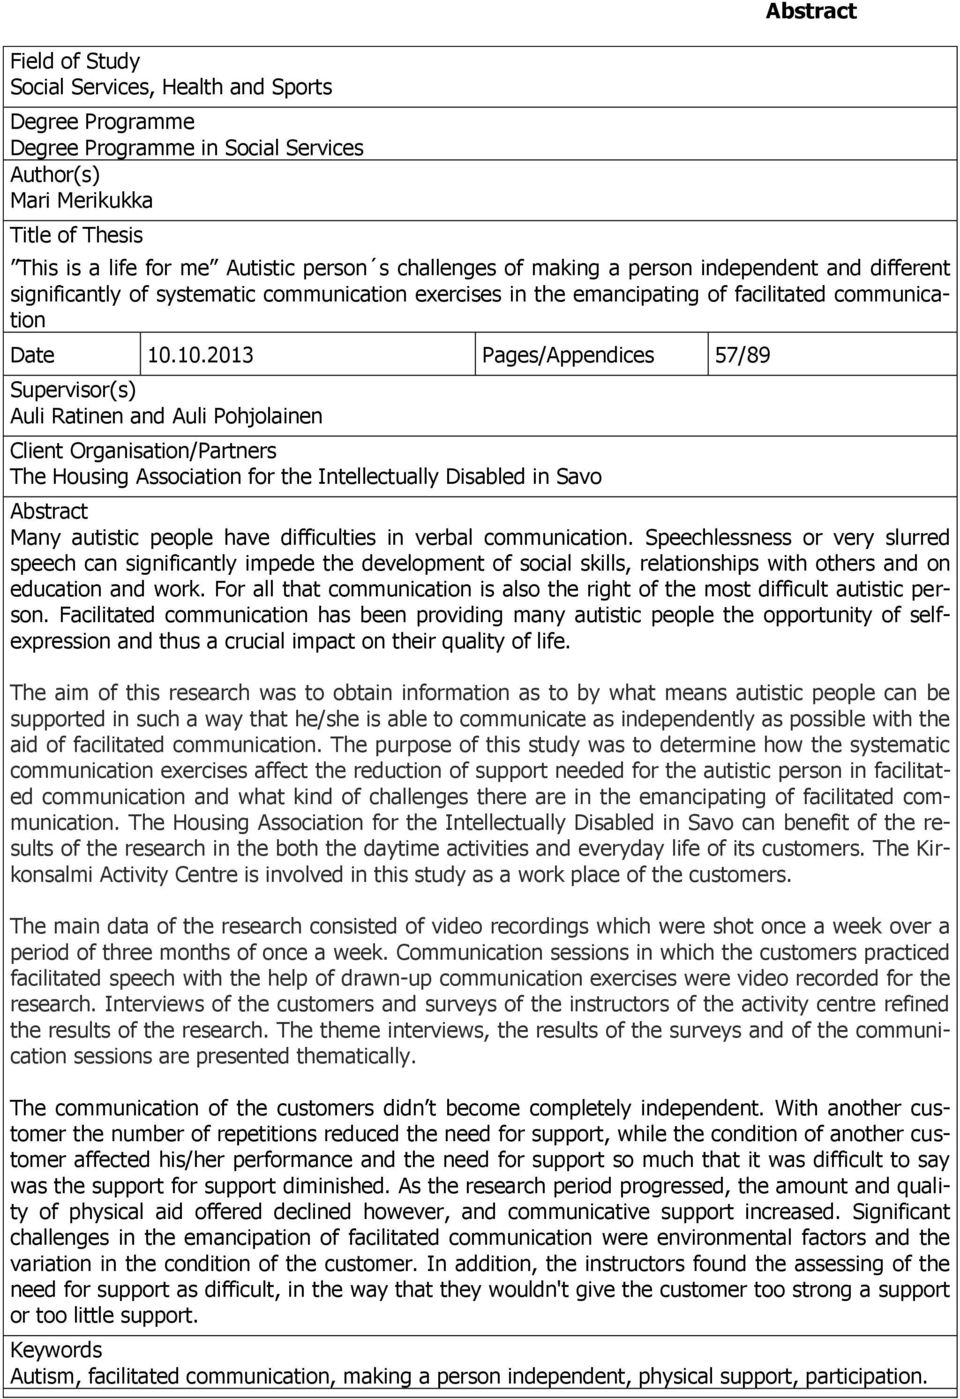 10.2013 Pages/Appendices 57/89 Supervisor(s) Auli Ratinen and Auli Pohjolainen Client Organisation/Partners The Housing Association for the Intellectually Disabled in Savo Abstract Many autistic